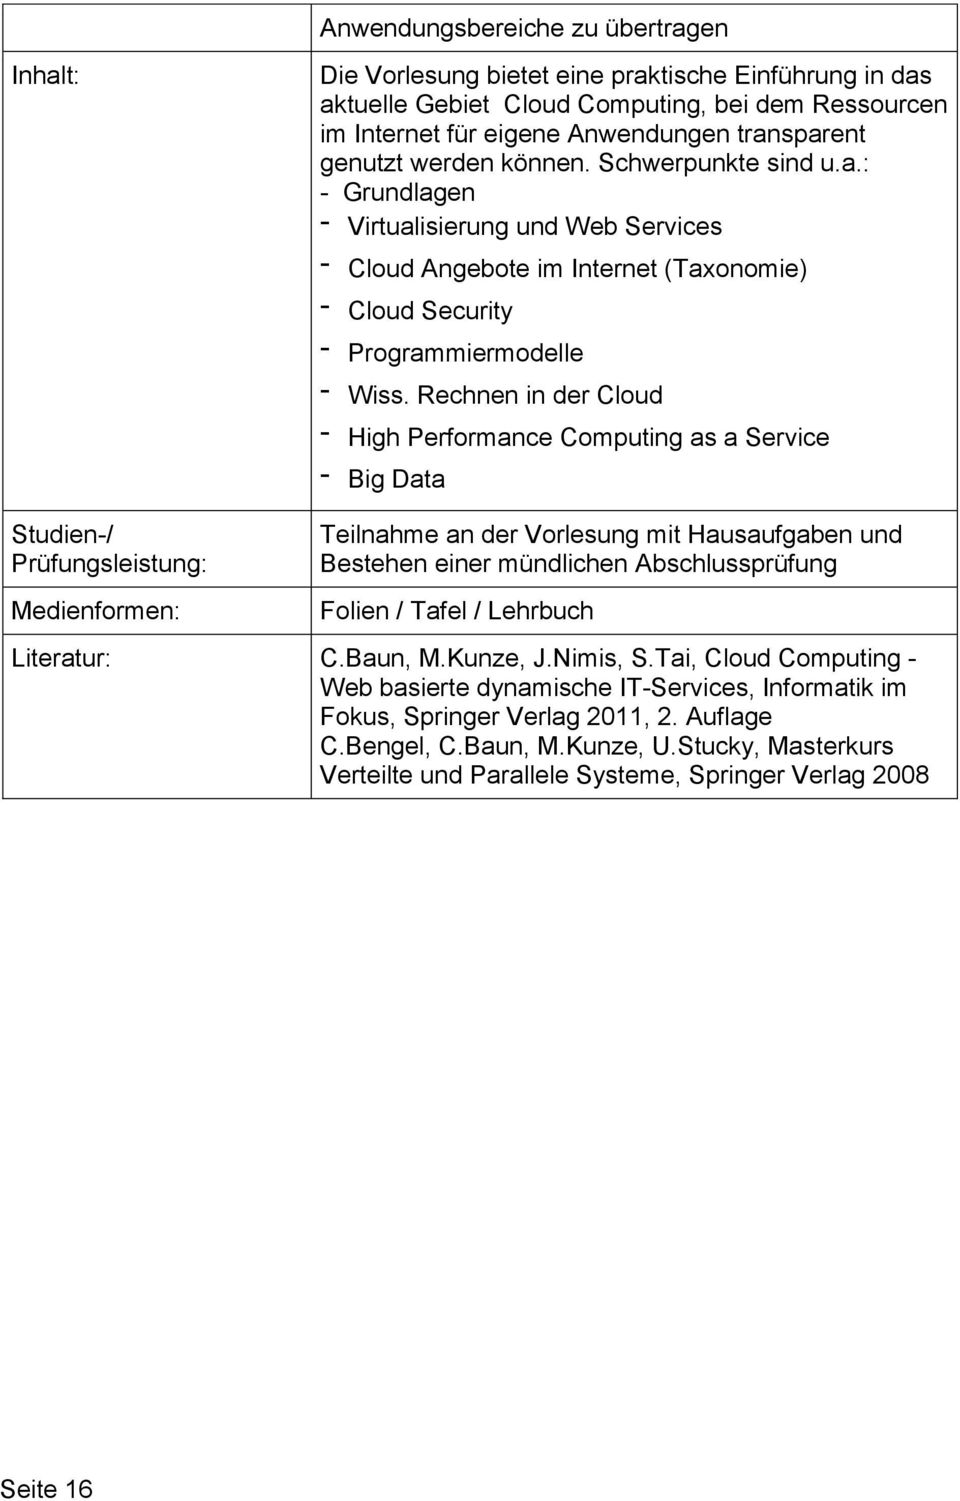 Rechnen in der Cloud - High Performance Computing as a Service - Big Data Studien-/ Teilnahme an der Vorlesung mit Hausaufgaben und Bestehen einer mündlichen Abschlussprüfung Folien / Tafel /